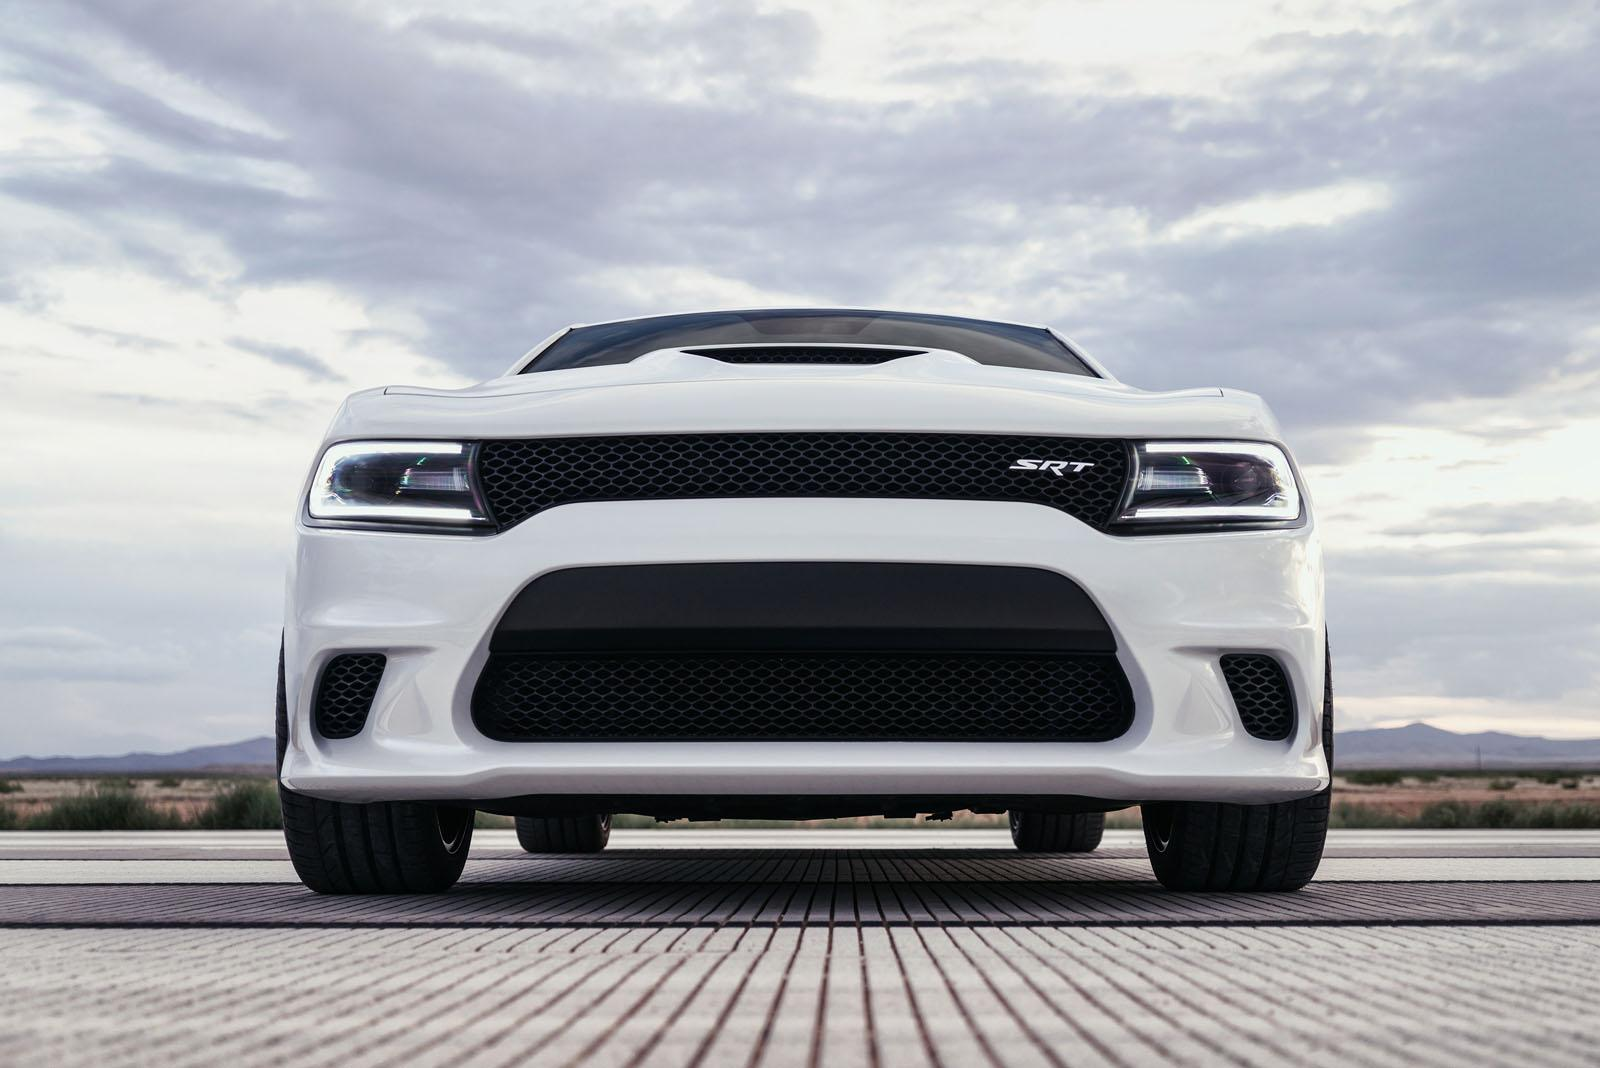 2015 dodge charger srt hellcat priced from 63 995 autoevolution. Black Bedroom Furniture Sets. Home Design Ideas